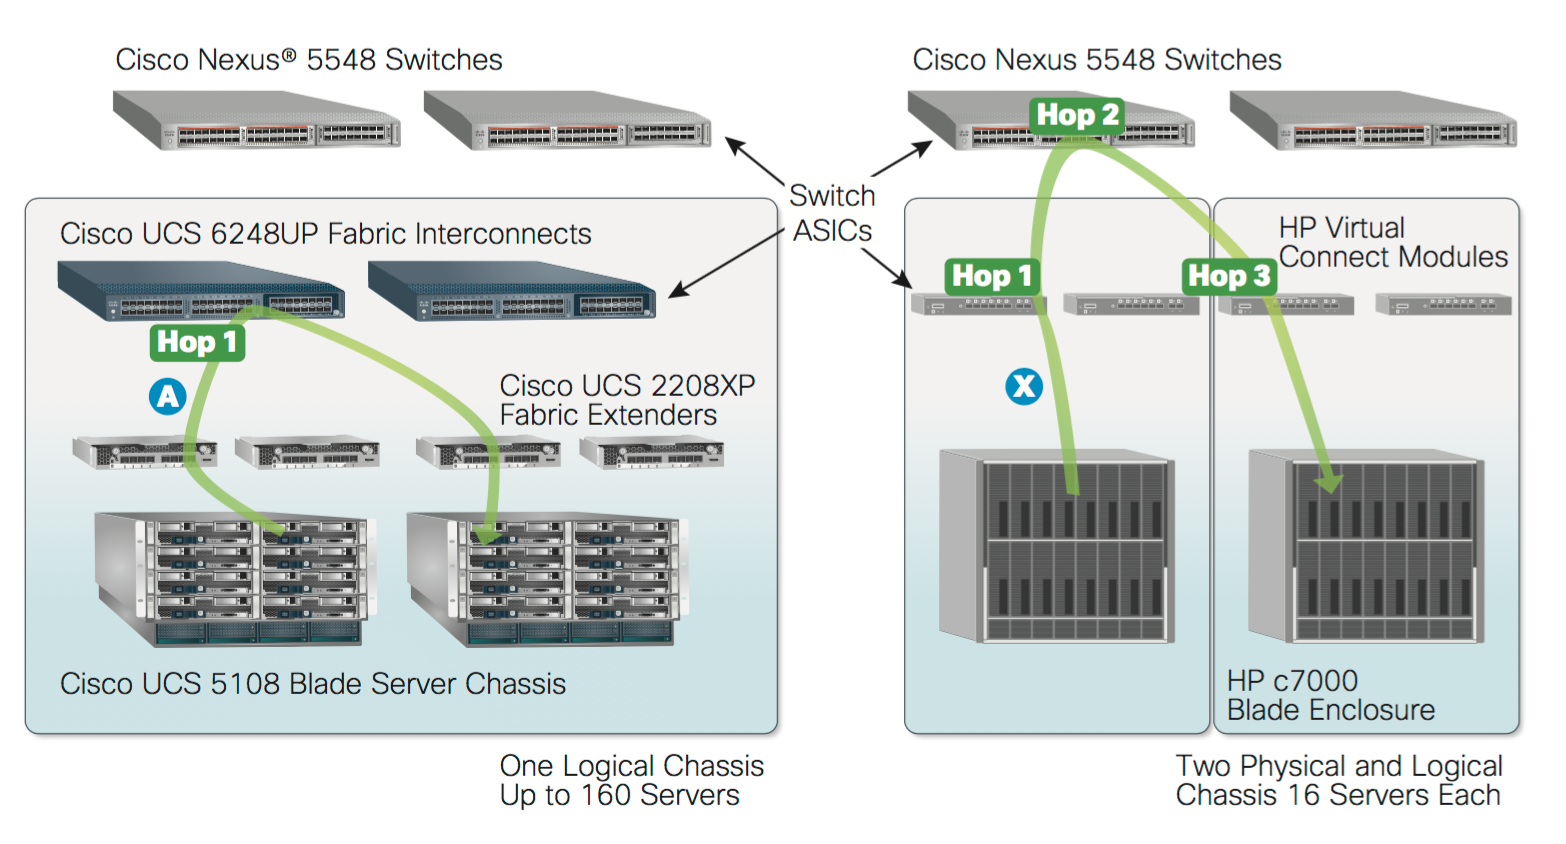 HP Blade Systems and Cisco UCS - Innovative Approach - Route XP